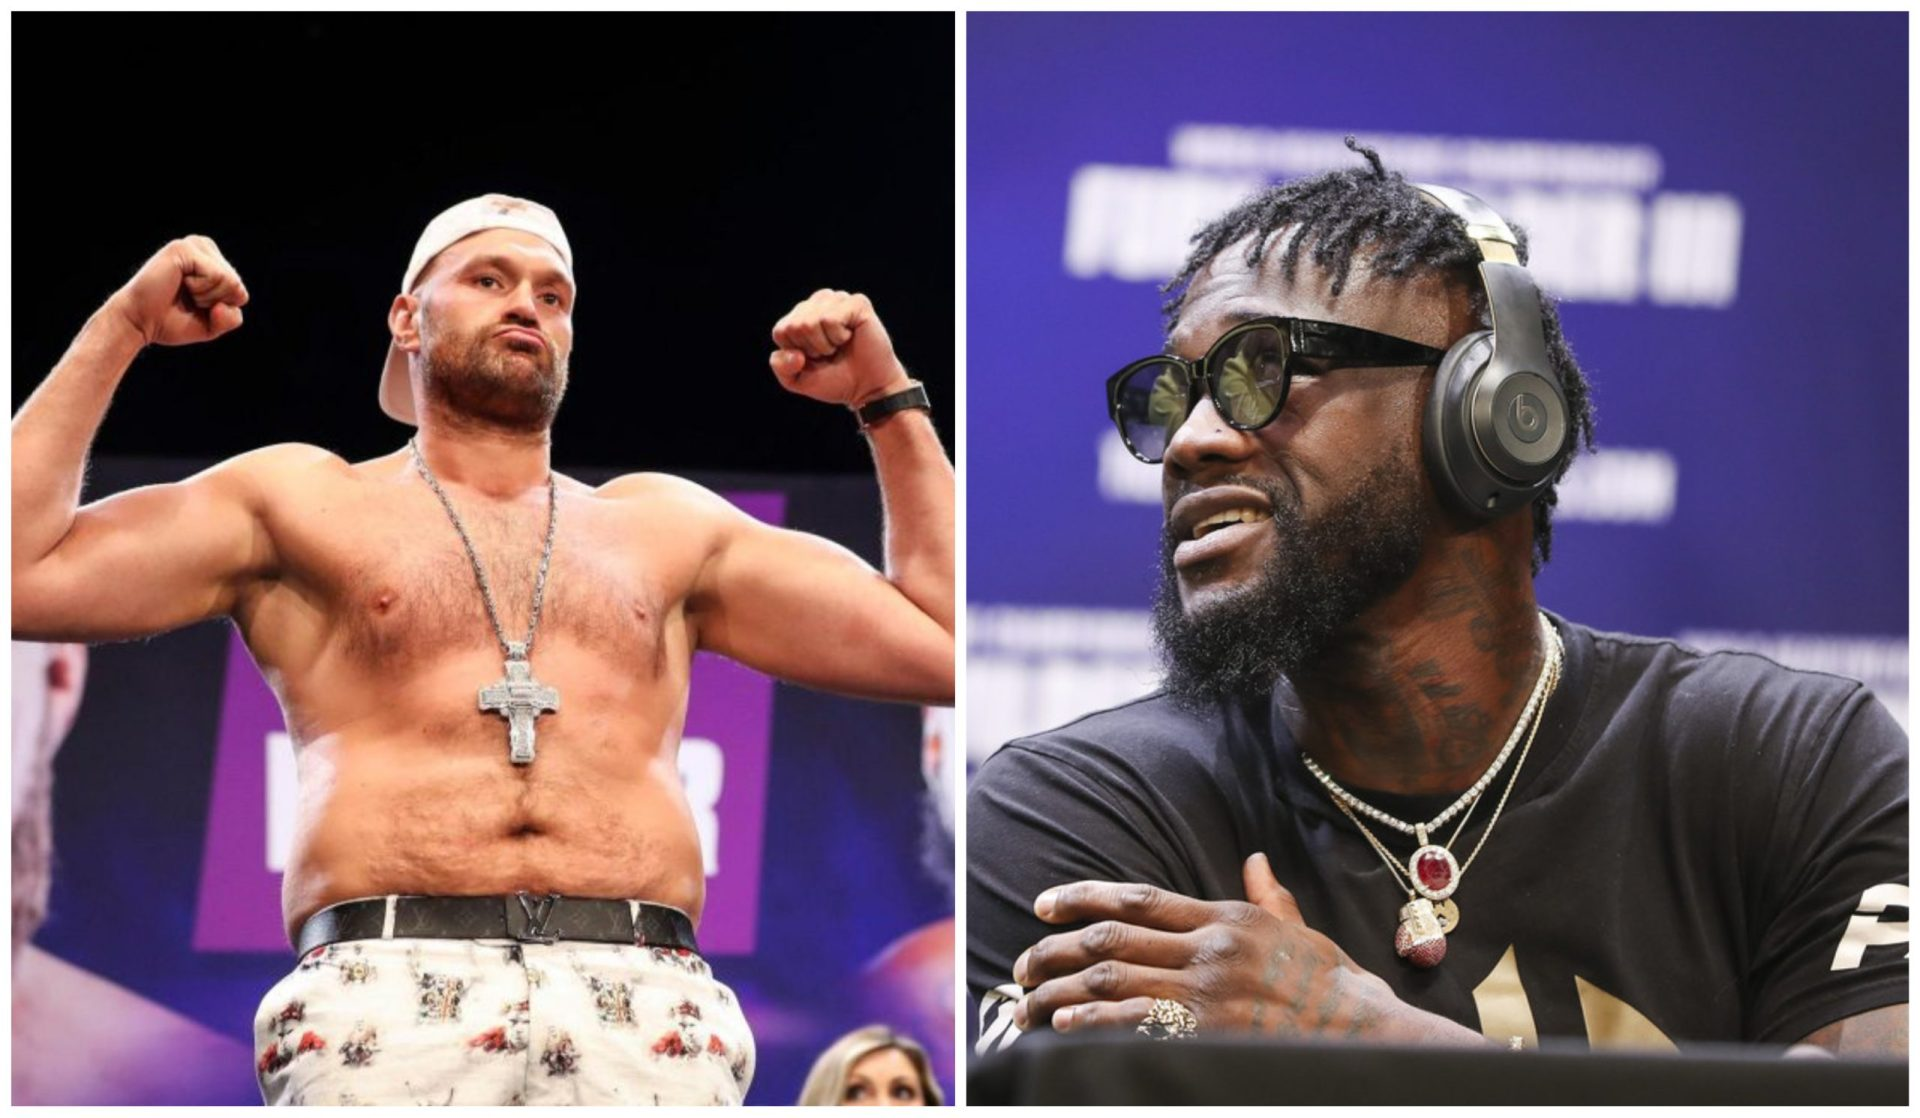 Tyson Fury says Deontay Wilder is 'mentally weak' ahead of their July 24 fight - THE SPORTS ROOM